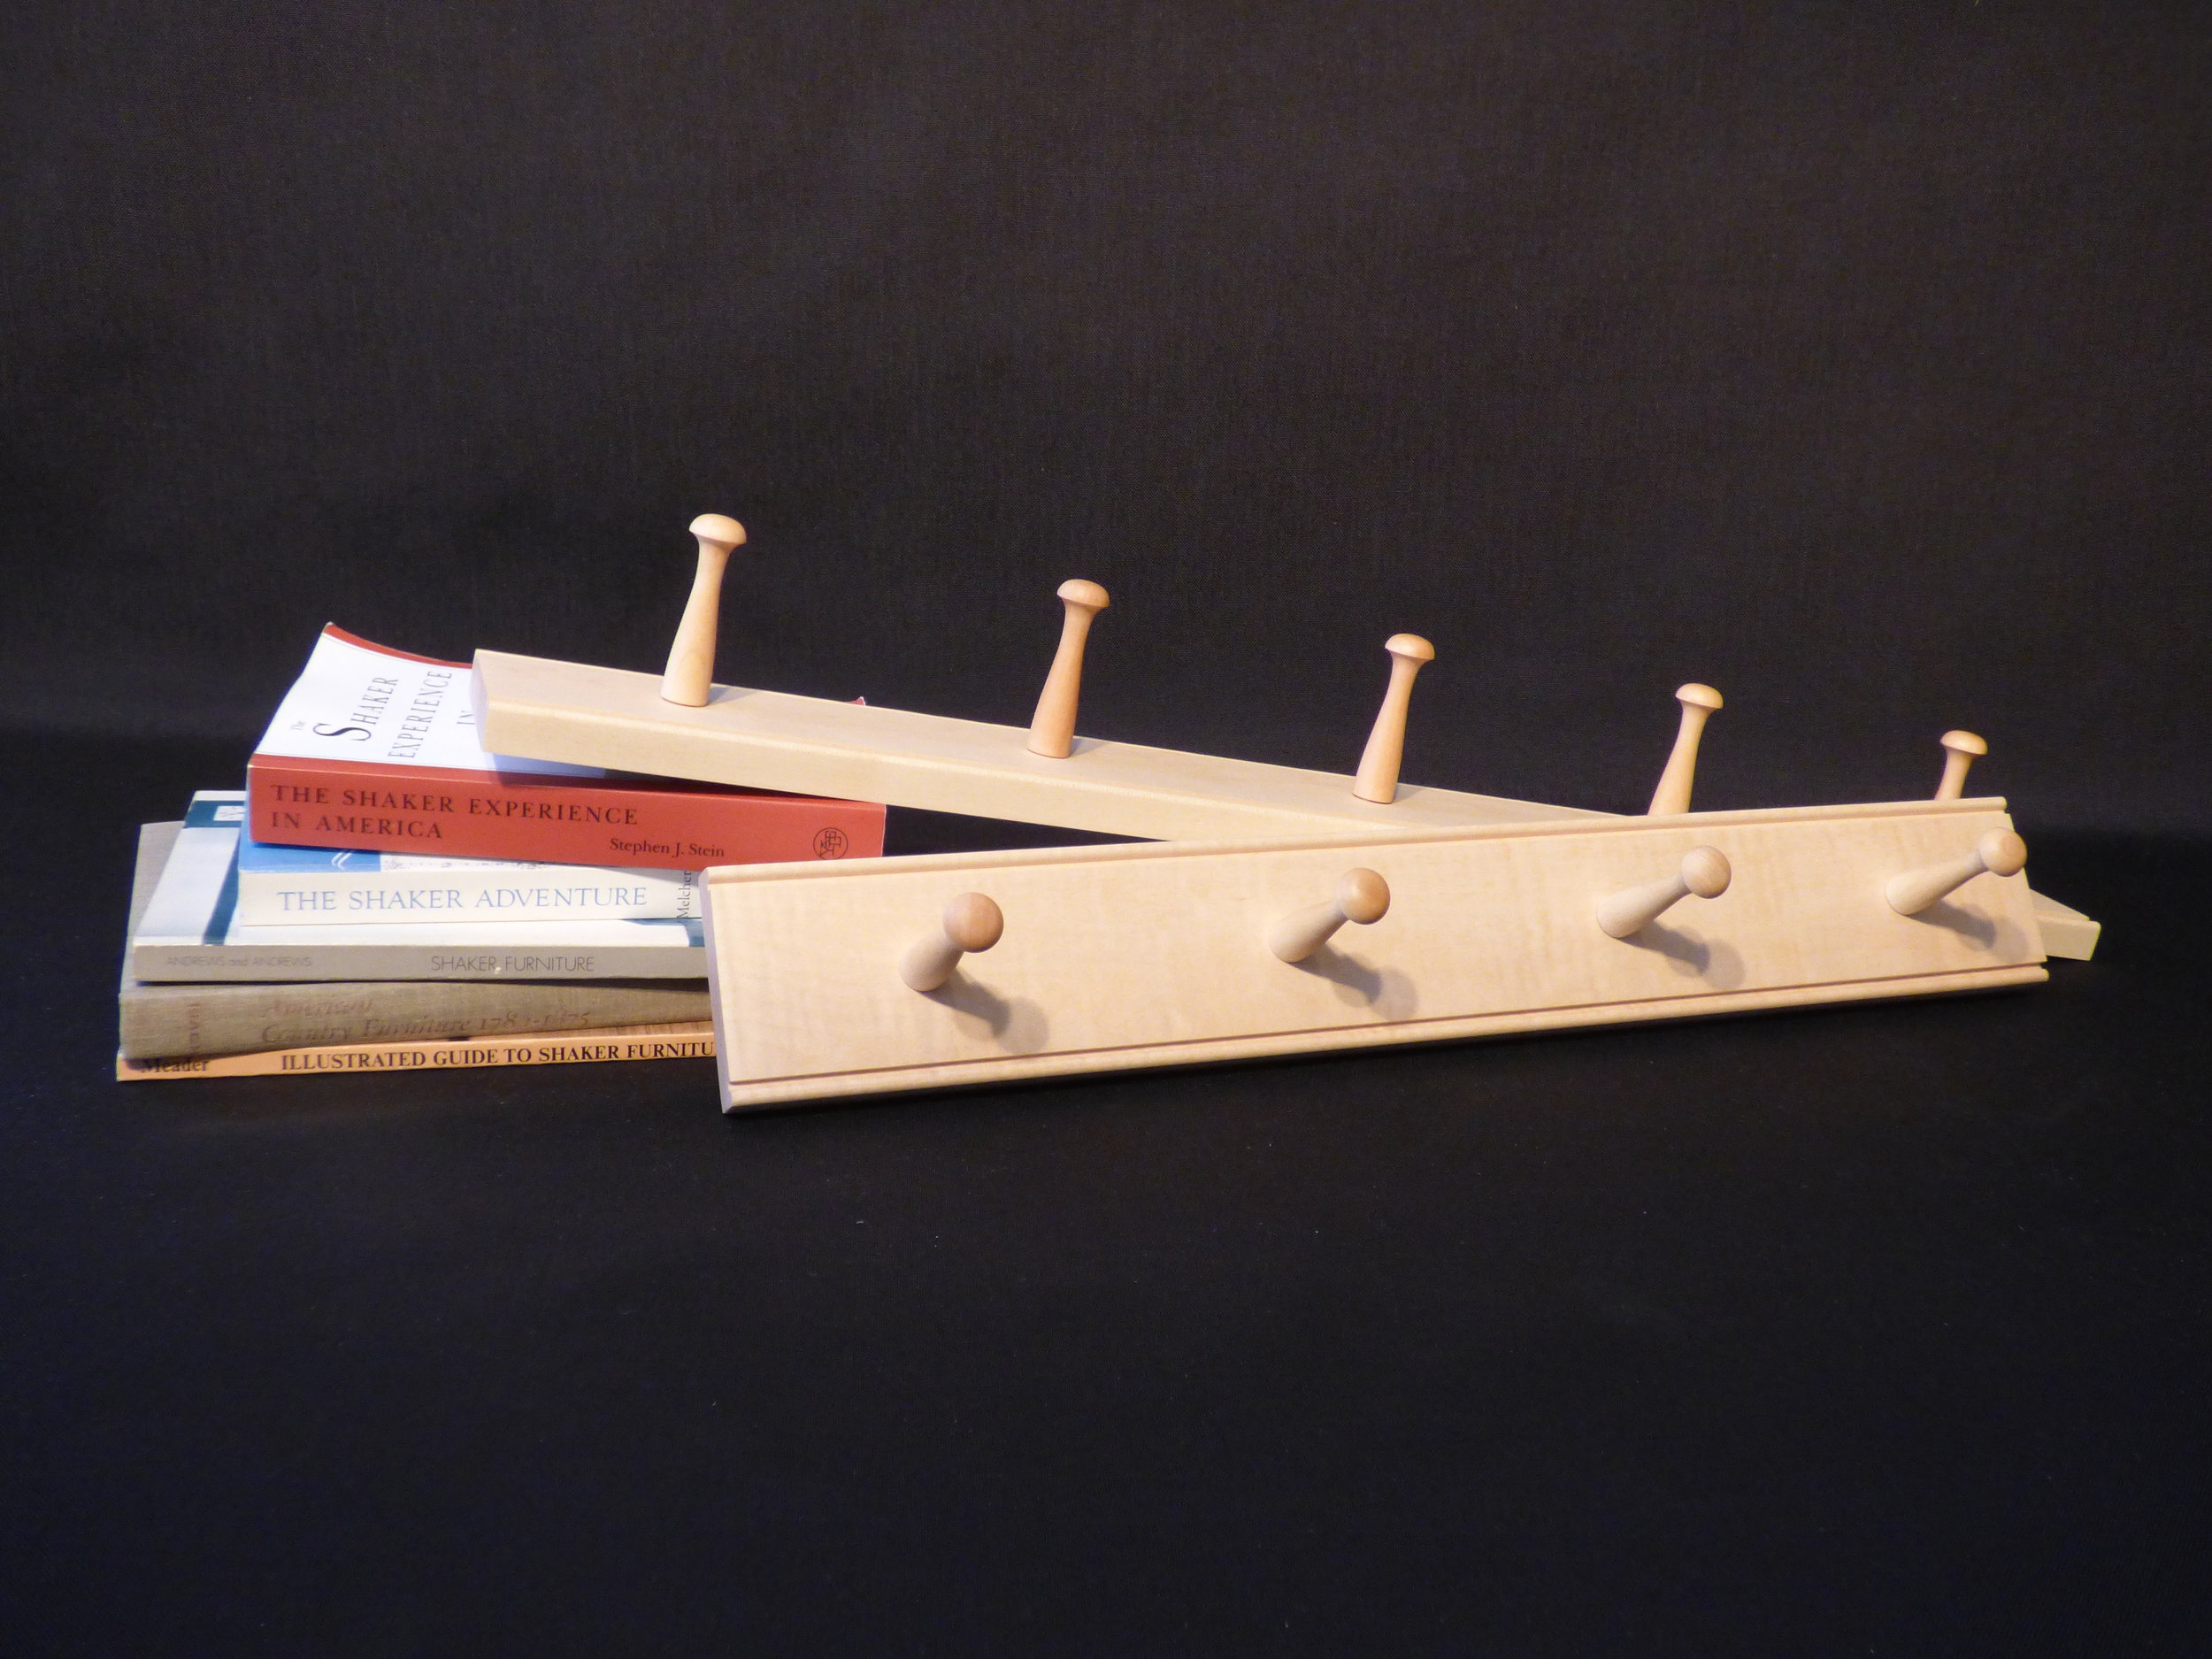 2' and 2.5' maple rails